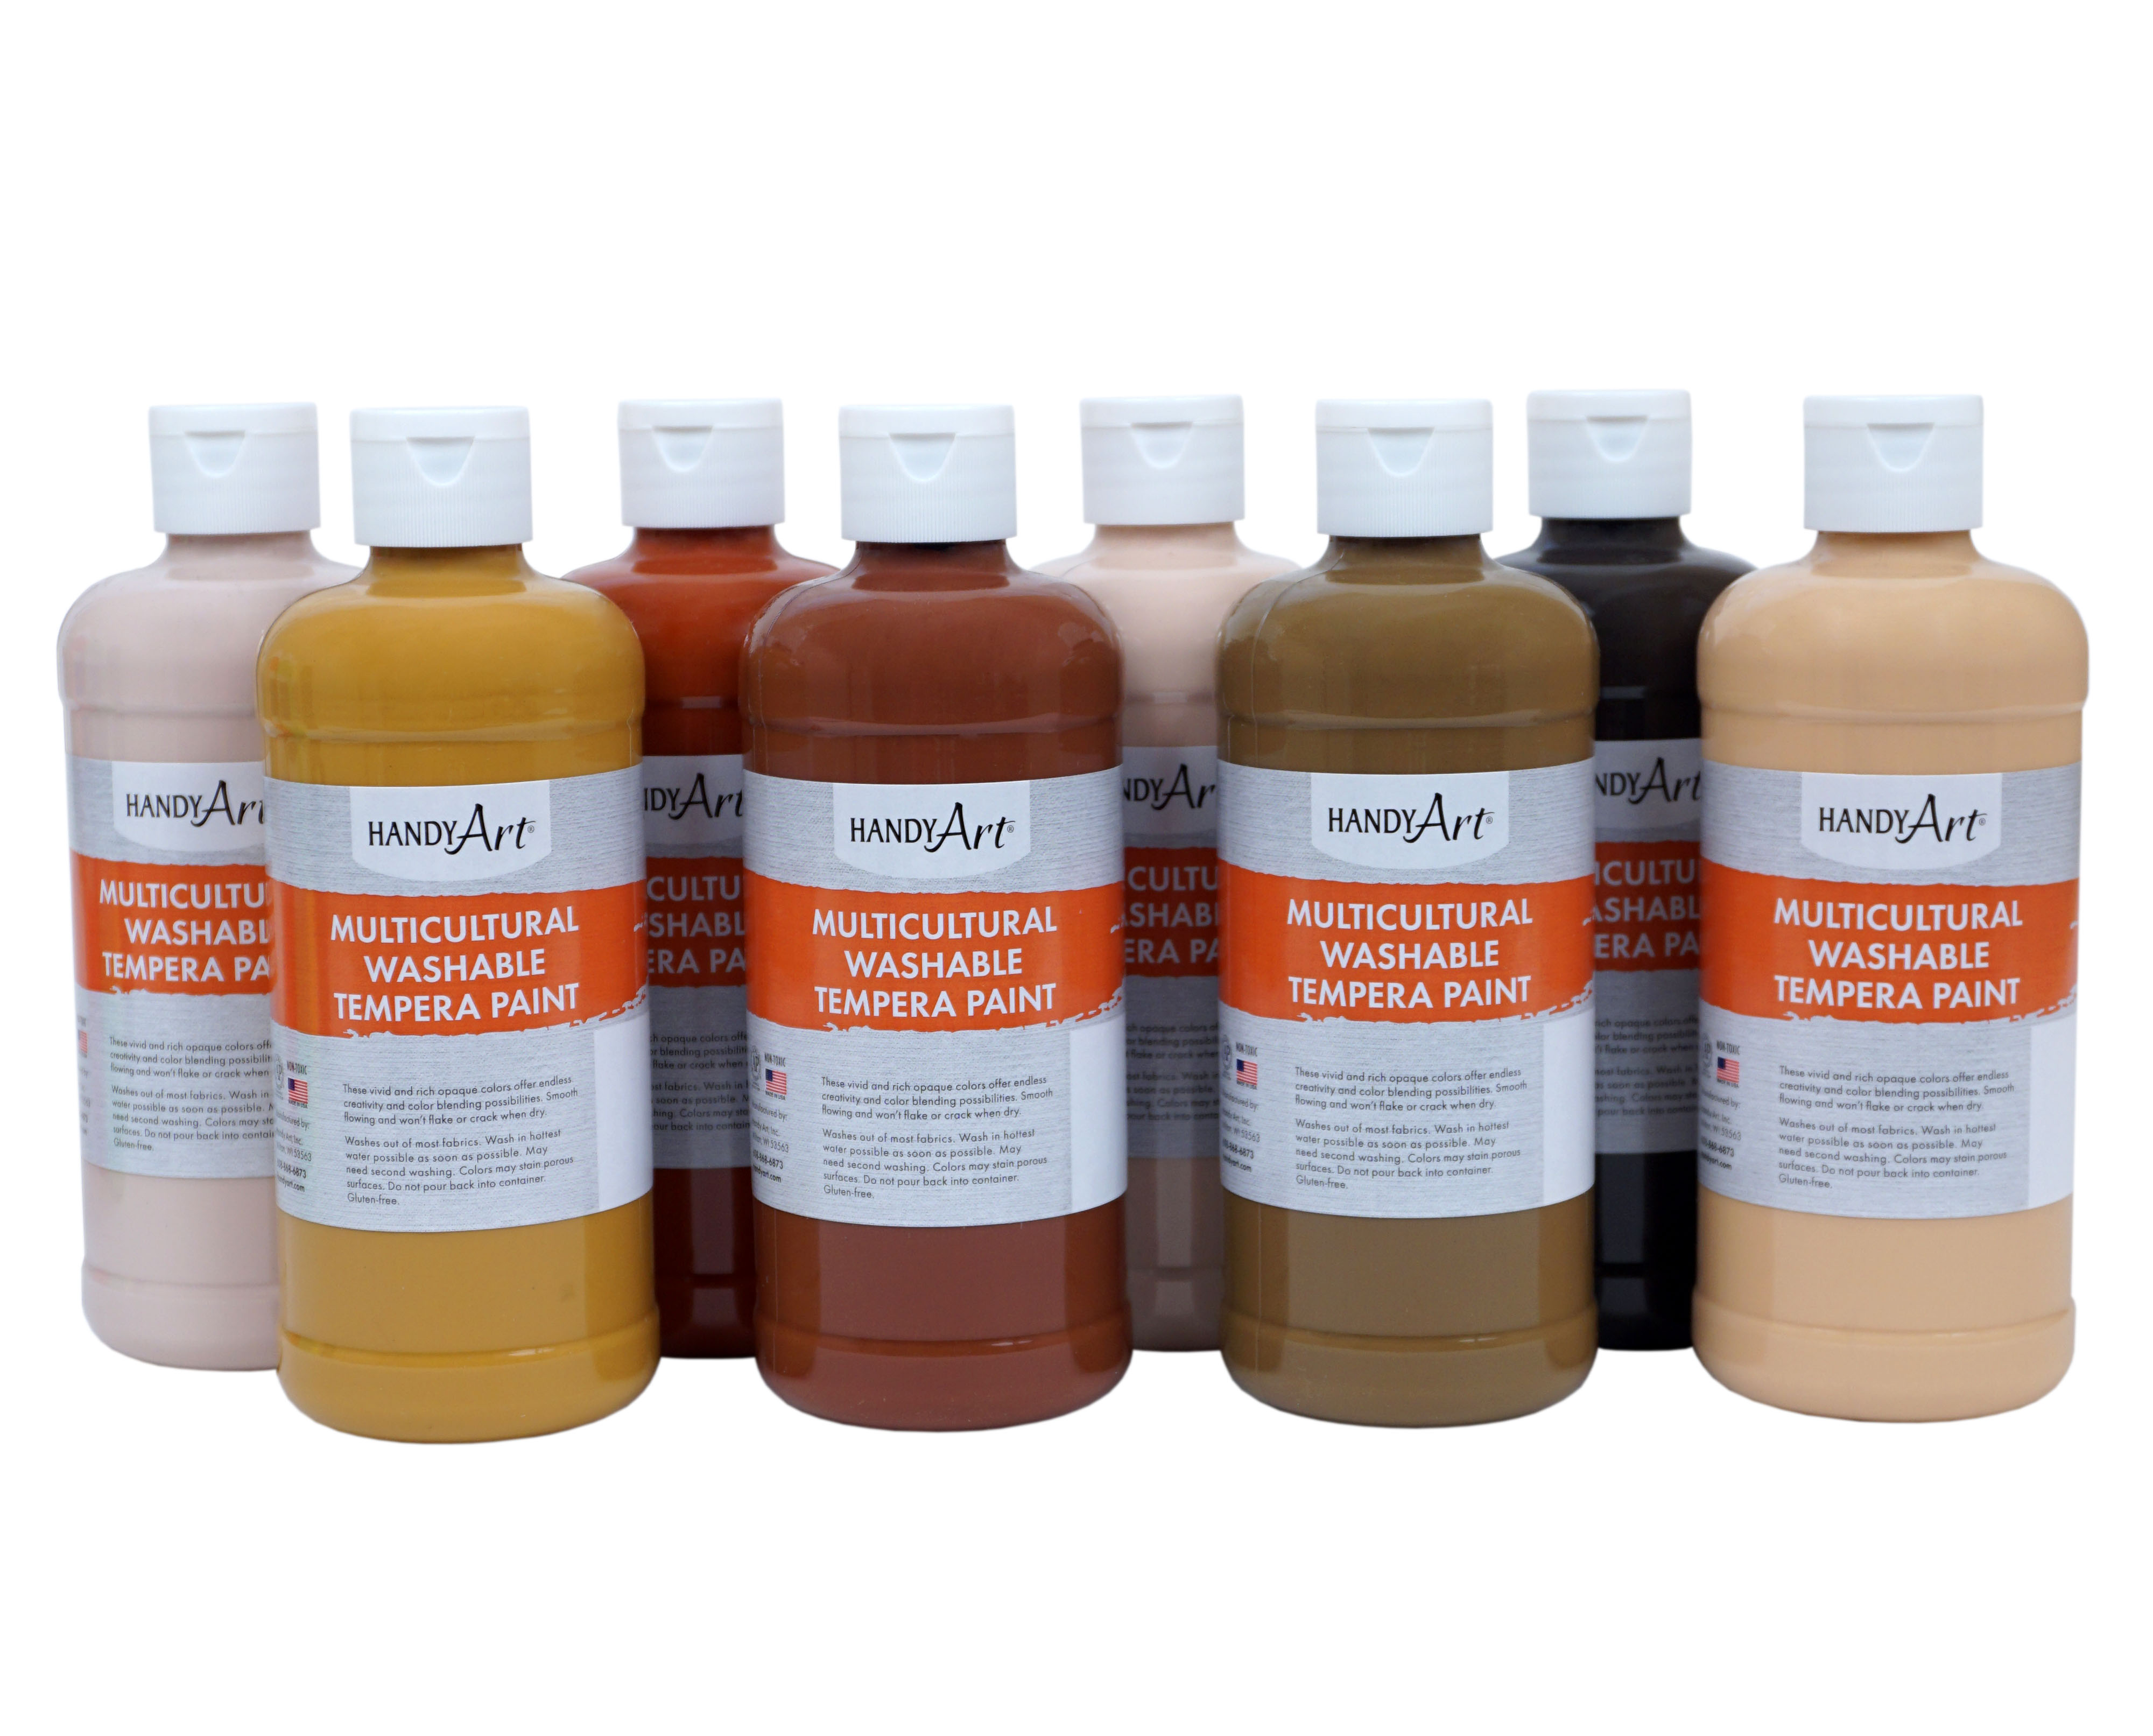 Handy Art Multicultural Washable Tempera Paint Set - 8 Colors Total, 16 oz